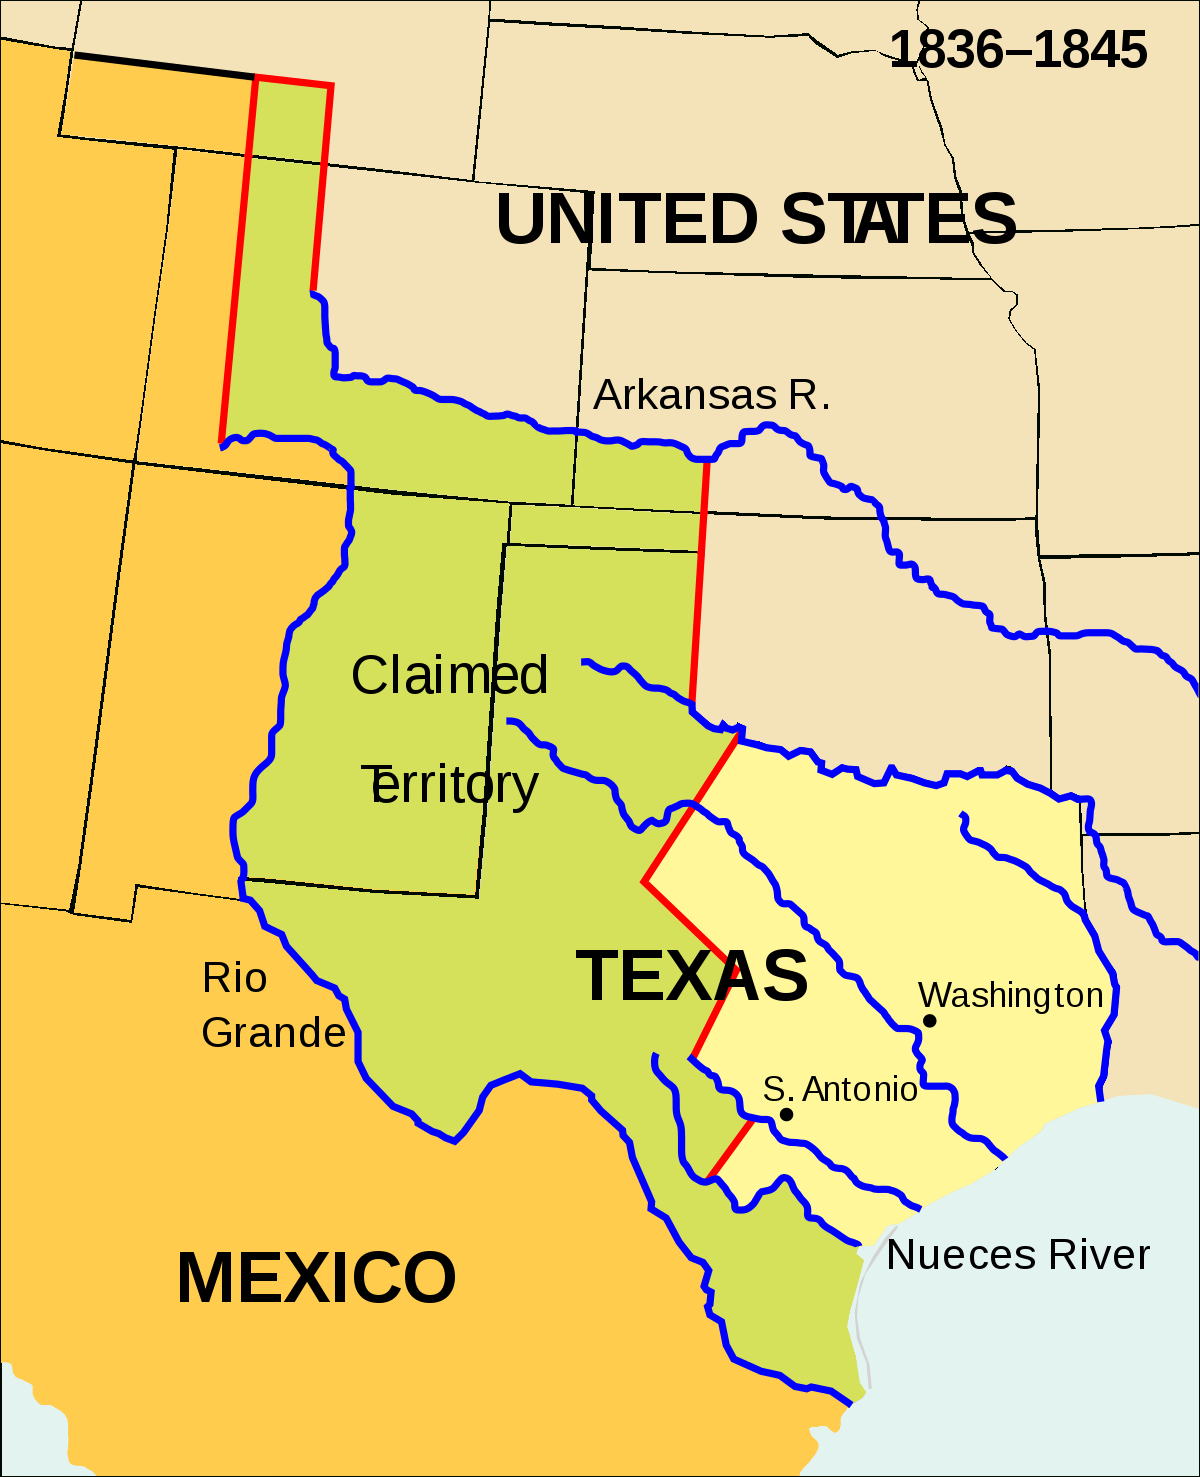 Texas Annexation - Wikipedia - Texas Independence Map